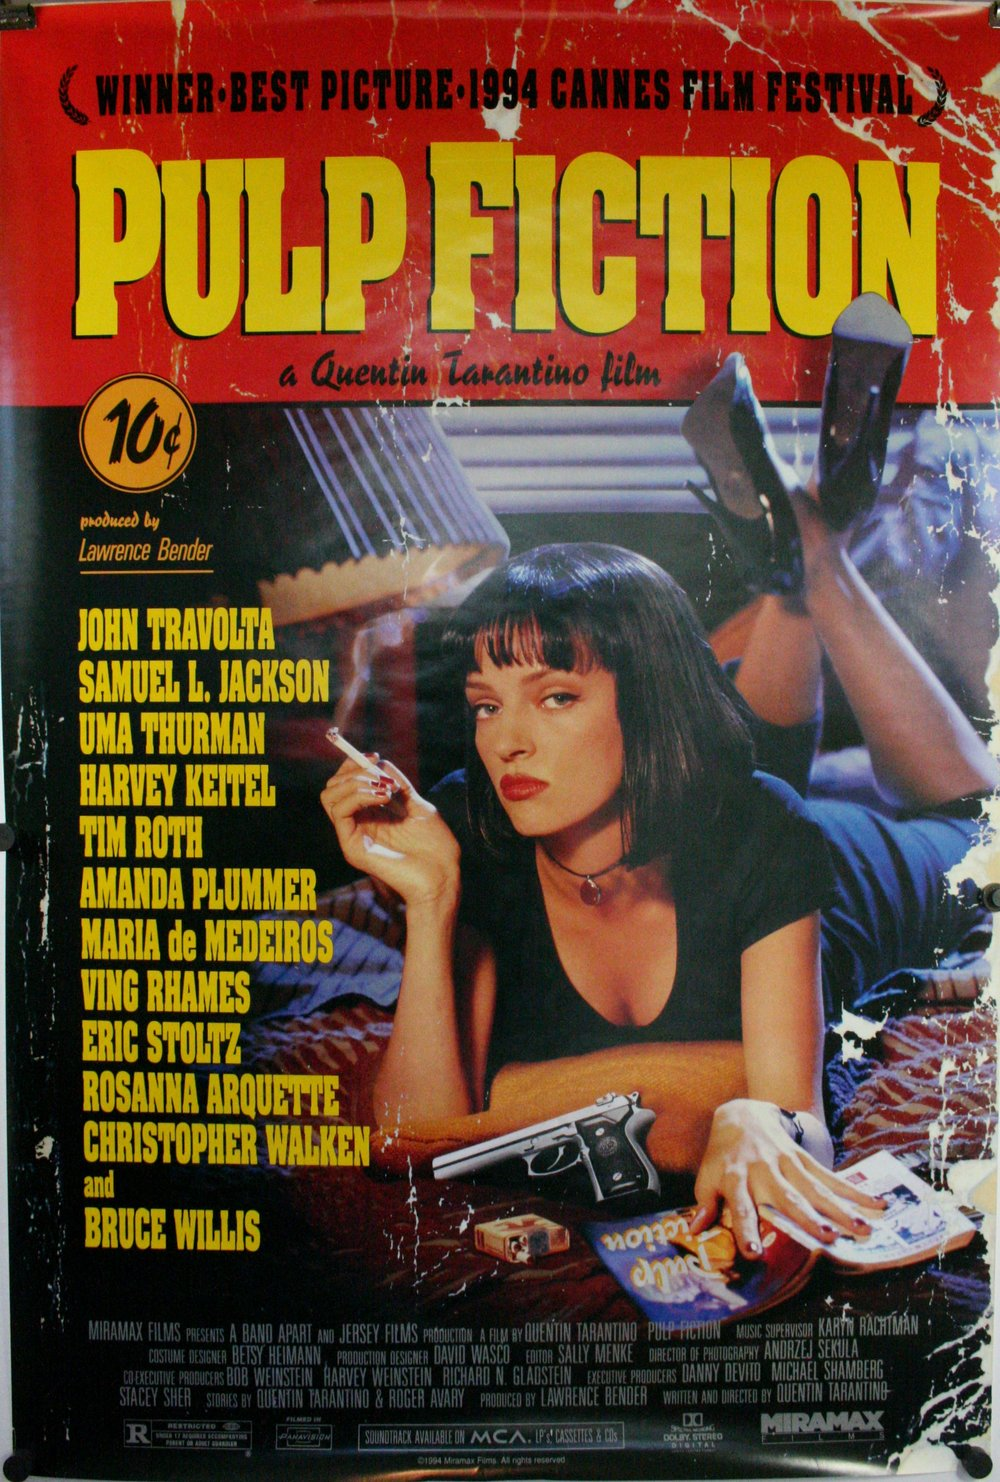 PULP-FICTION-2100.jpg